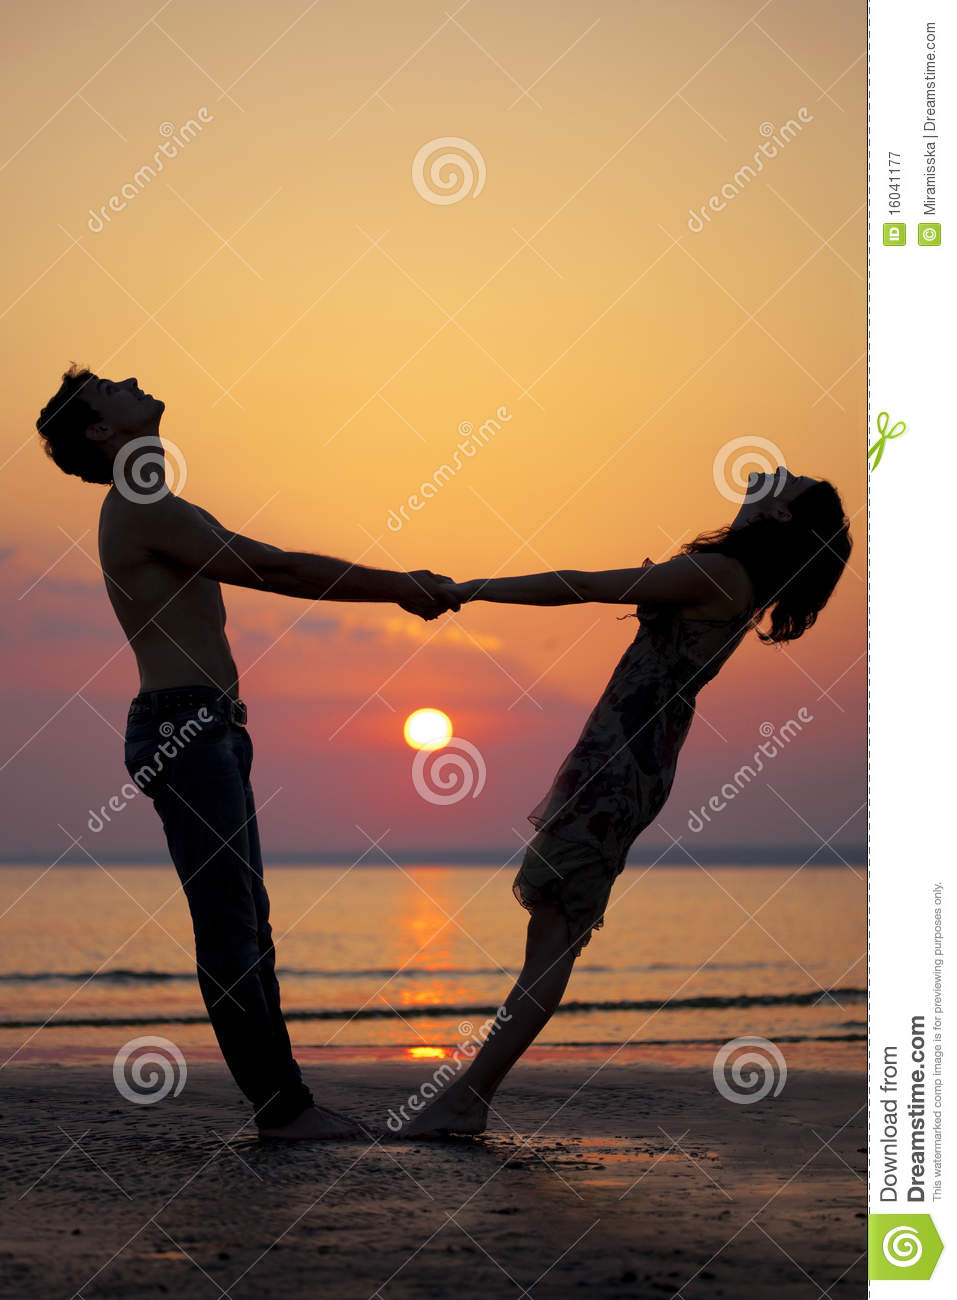 Two People In Love At Sunset Royalty Free Stock ...